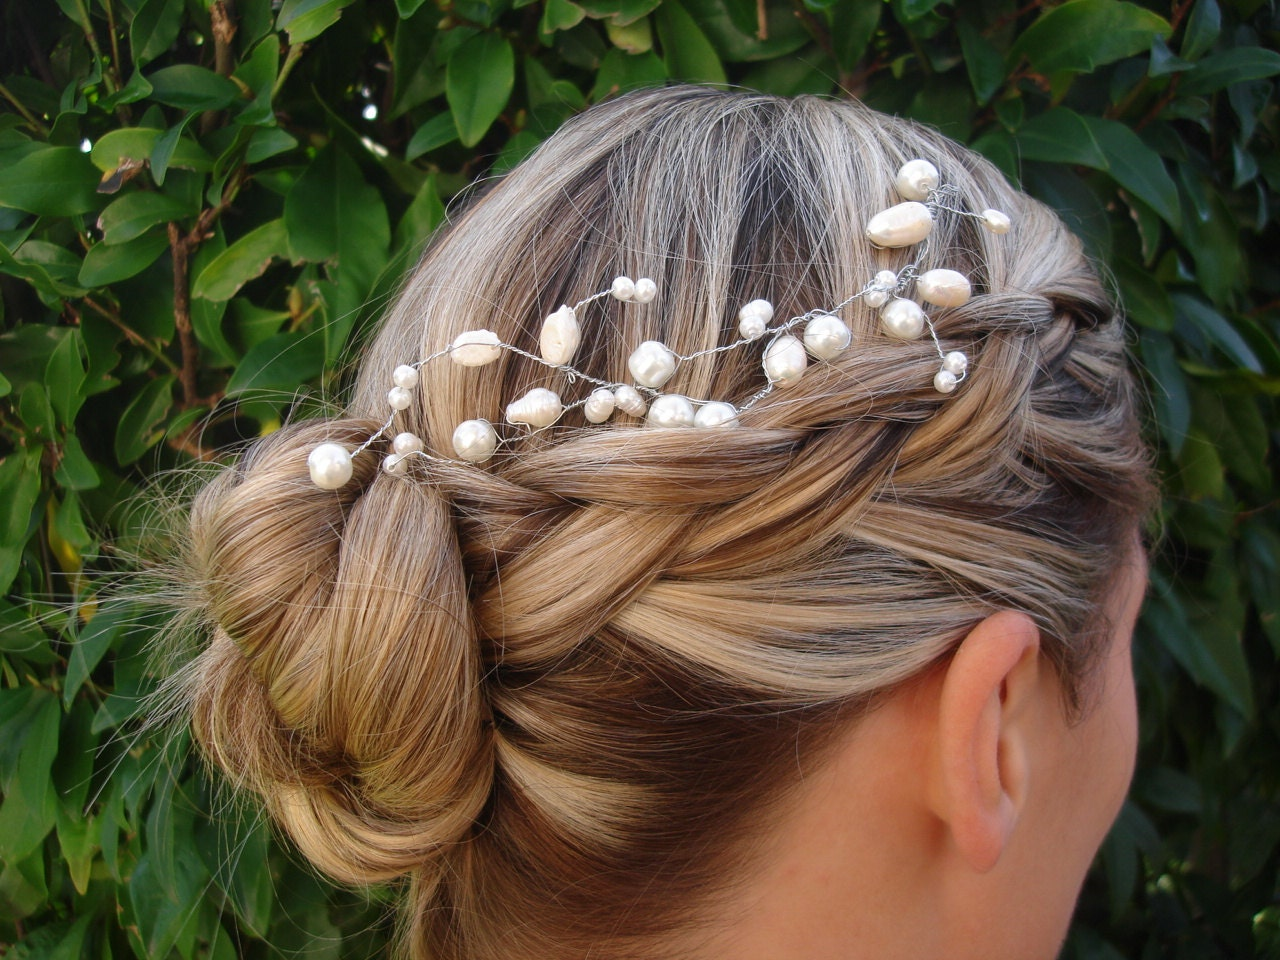 Bridal Pearl tiara wire wrapped hair accessory - Bridal Collection Style 003